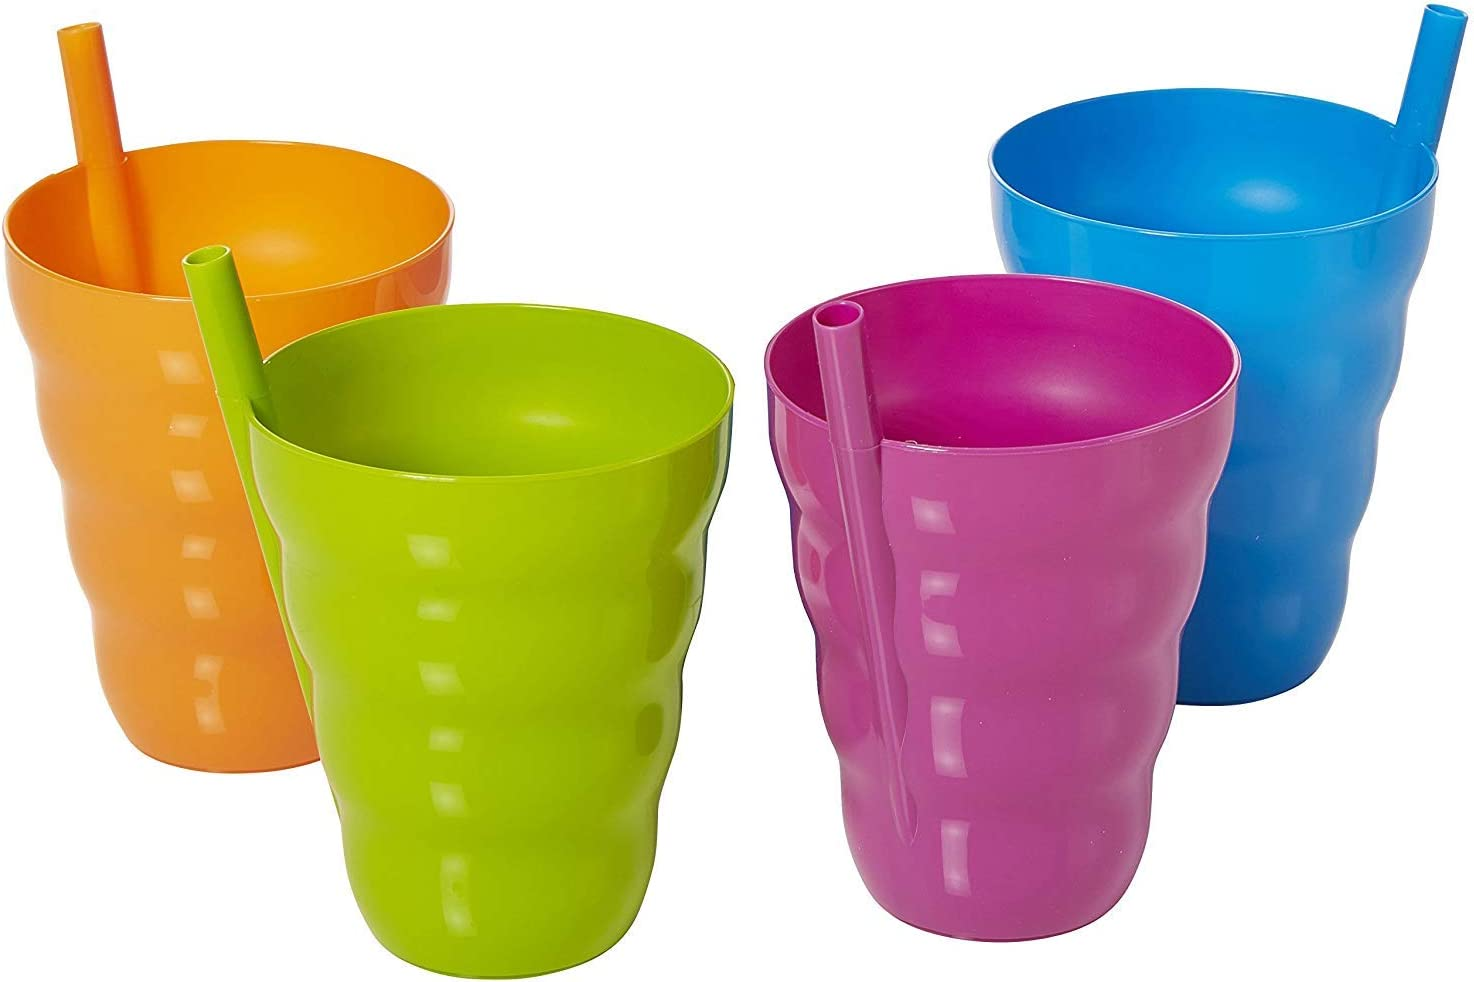 Arrow Home Products Sip-a-Cup, 4-Pack, Assorted Colors